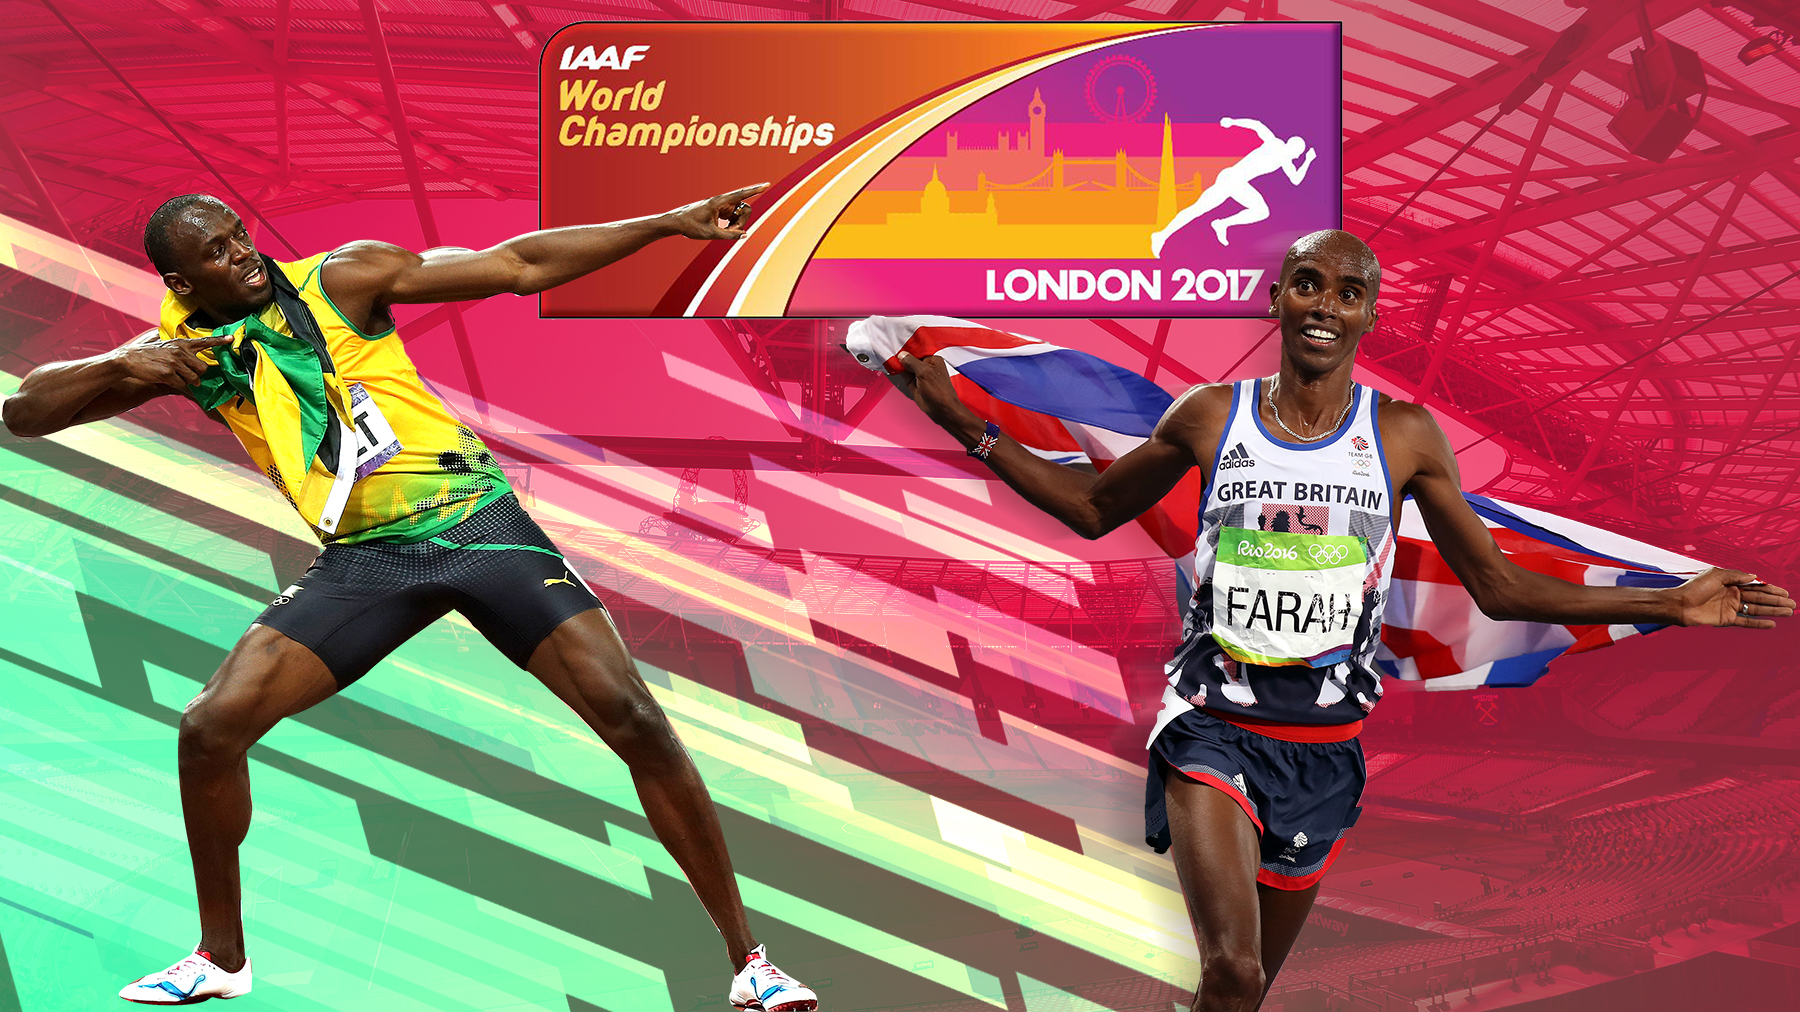 Mo Farah and Usain Bolt return to London in search of gold – will it be the 2012 spirit all over again?